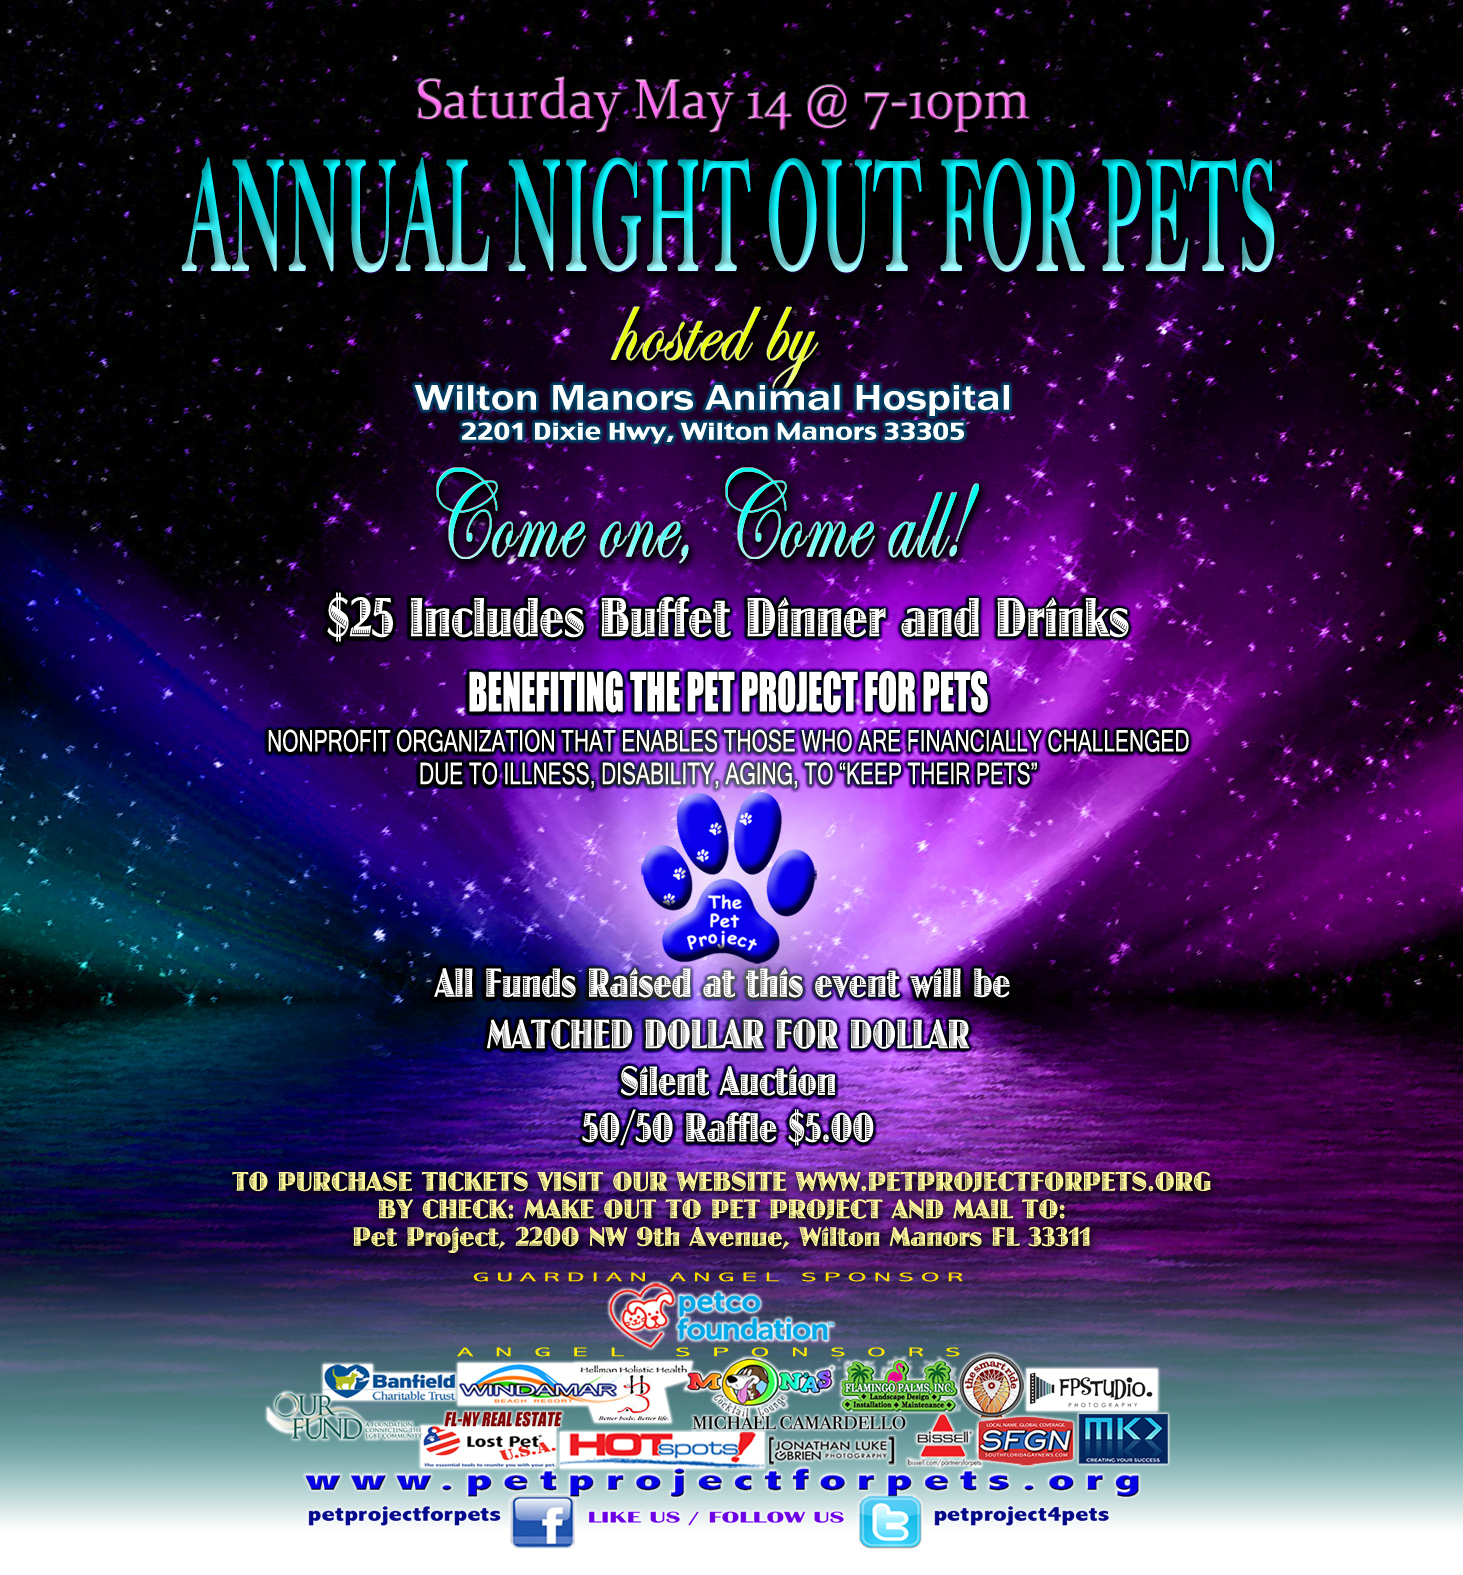 Night out for pets #67E1BD1